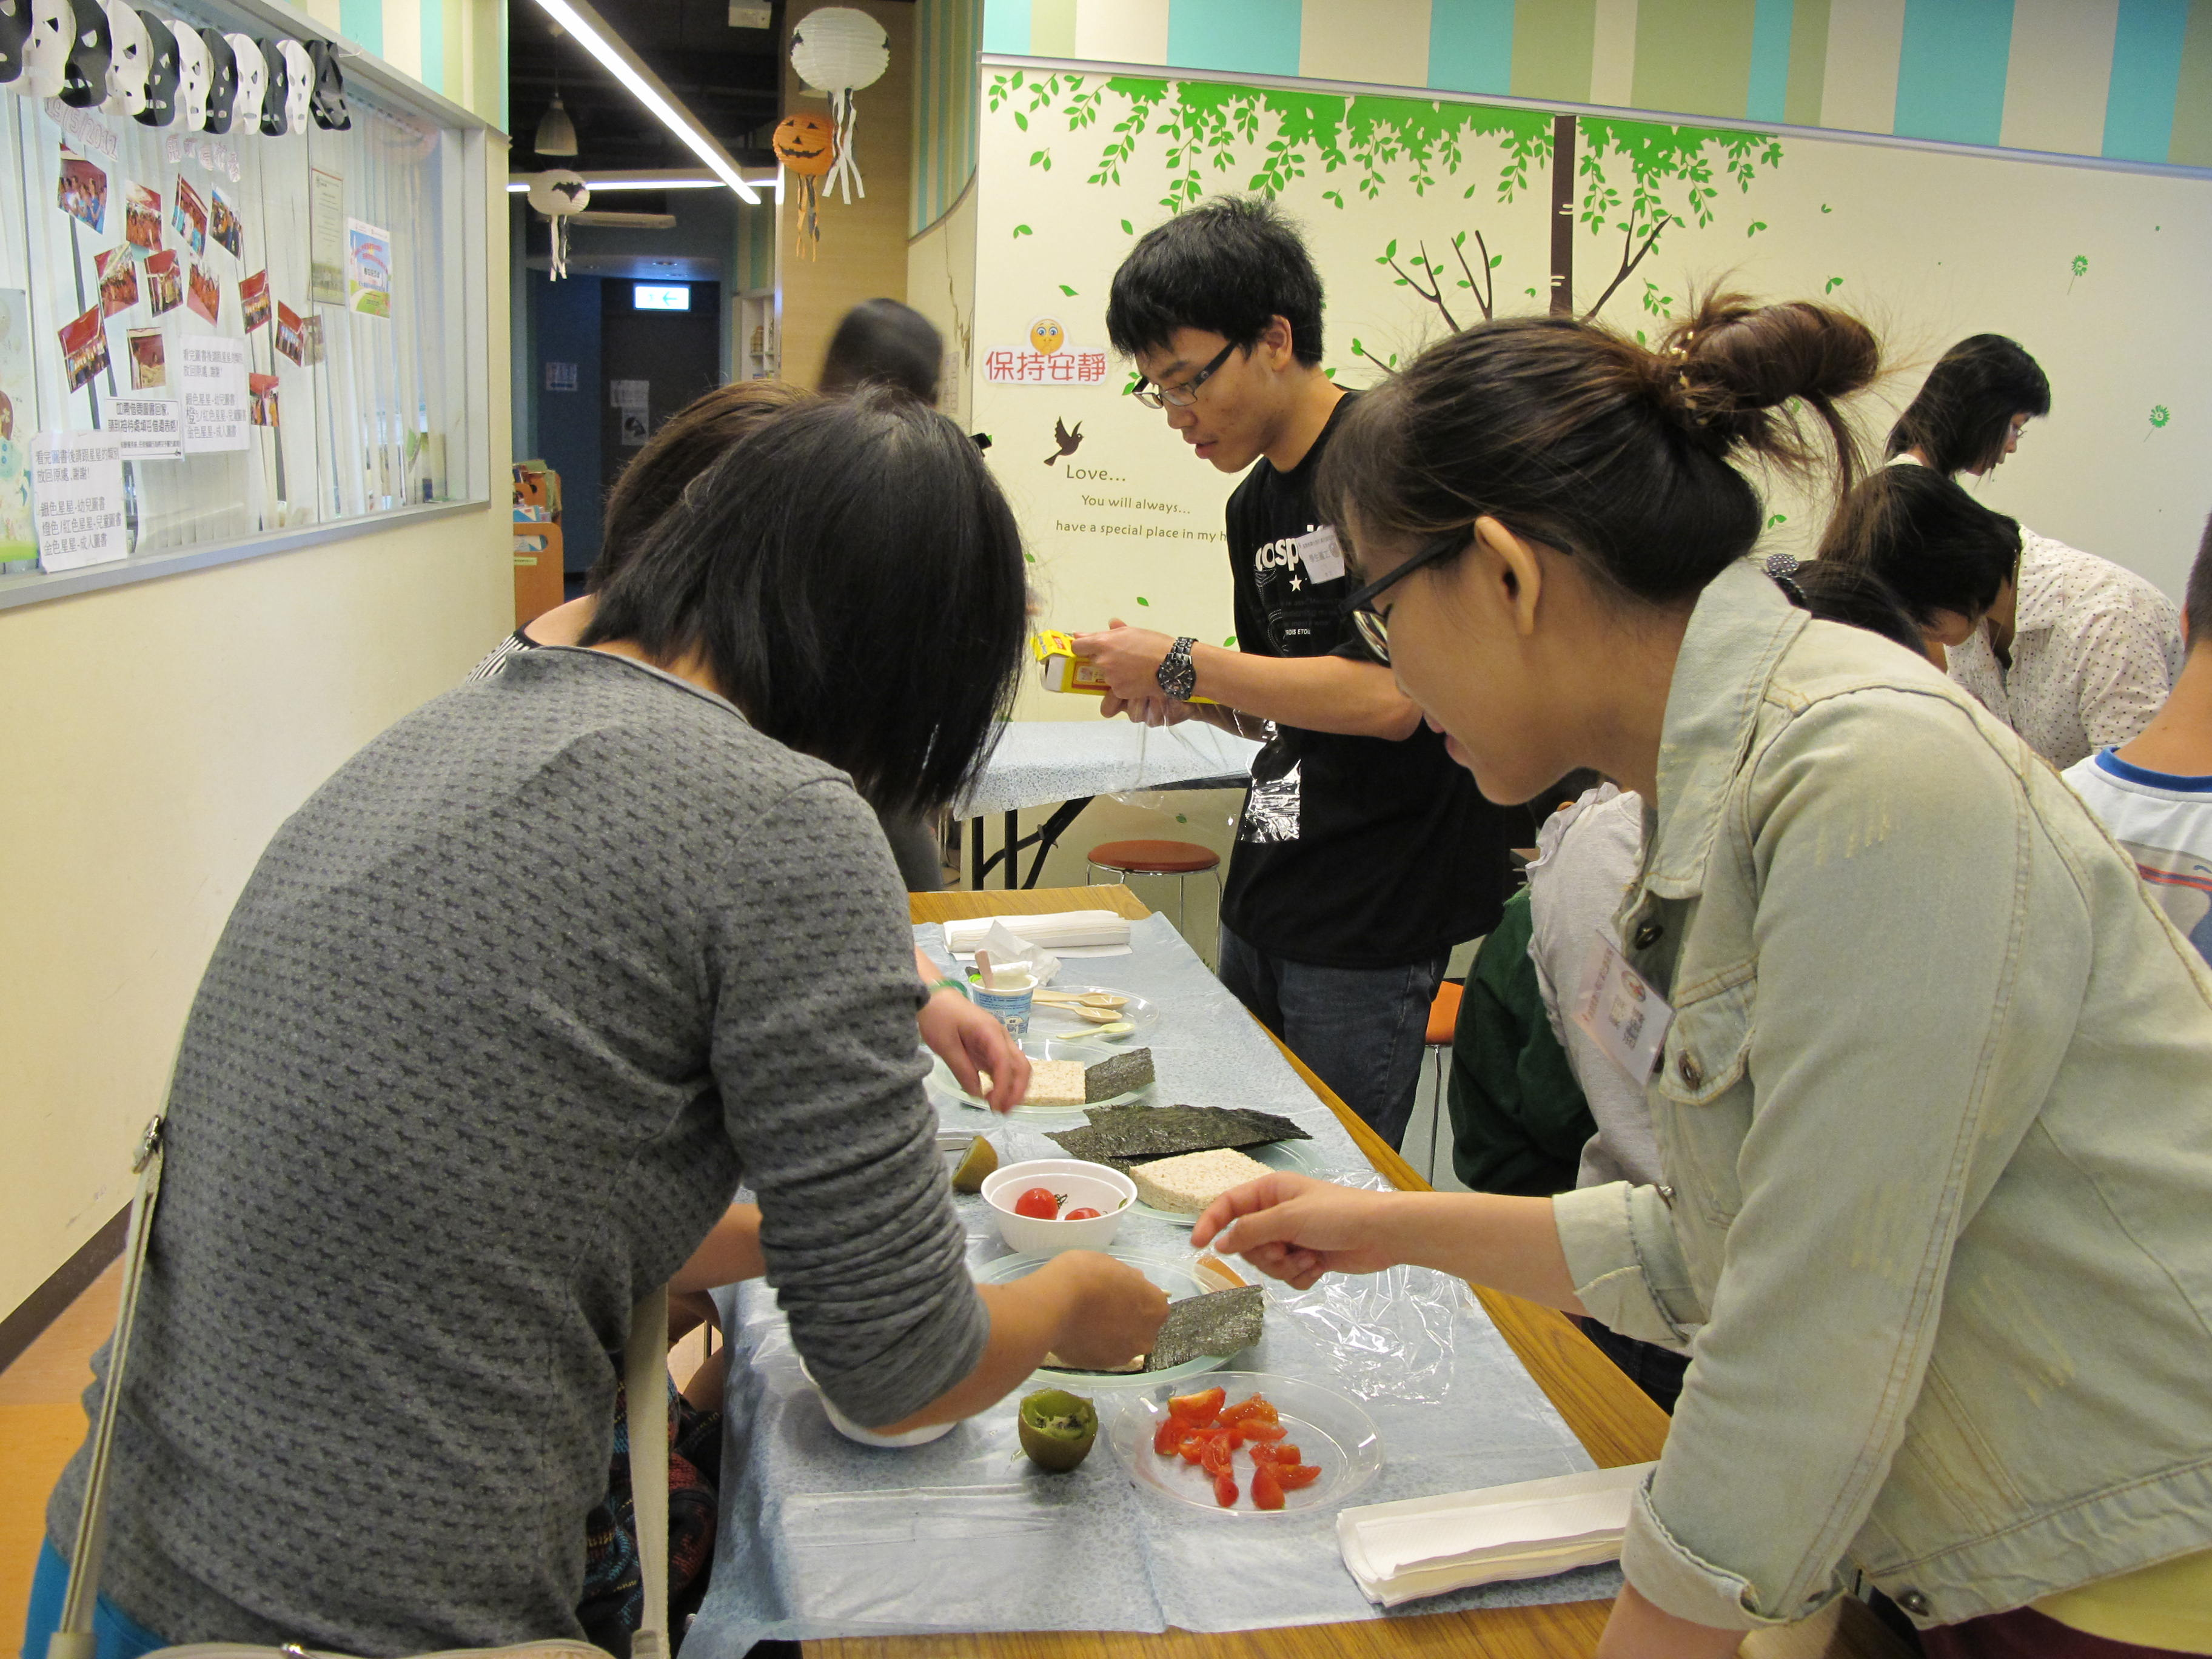 United Christian Nethersole Community Health Service Project -- 餐餐智慳嚐有營 - Photo - 41